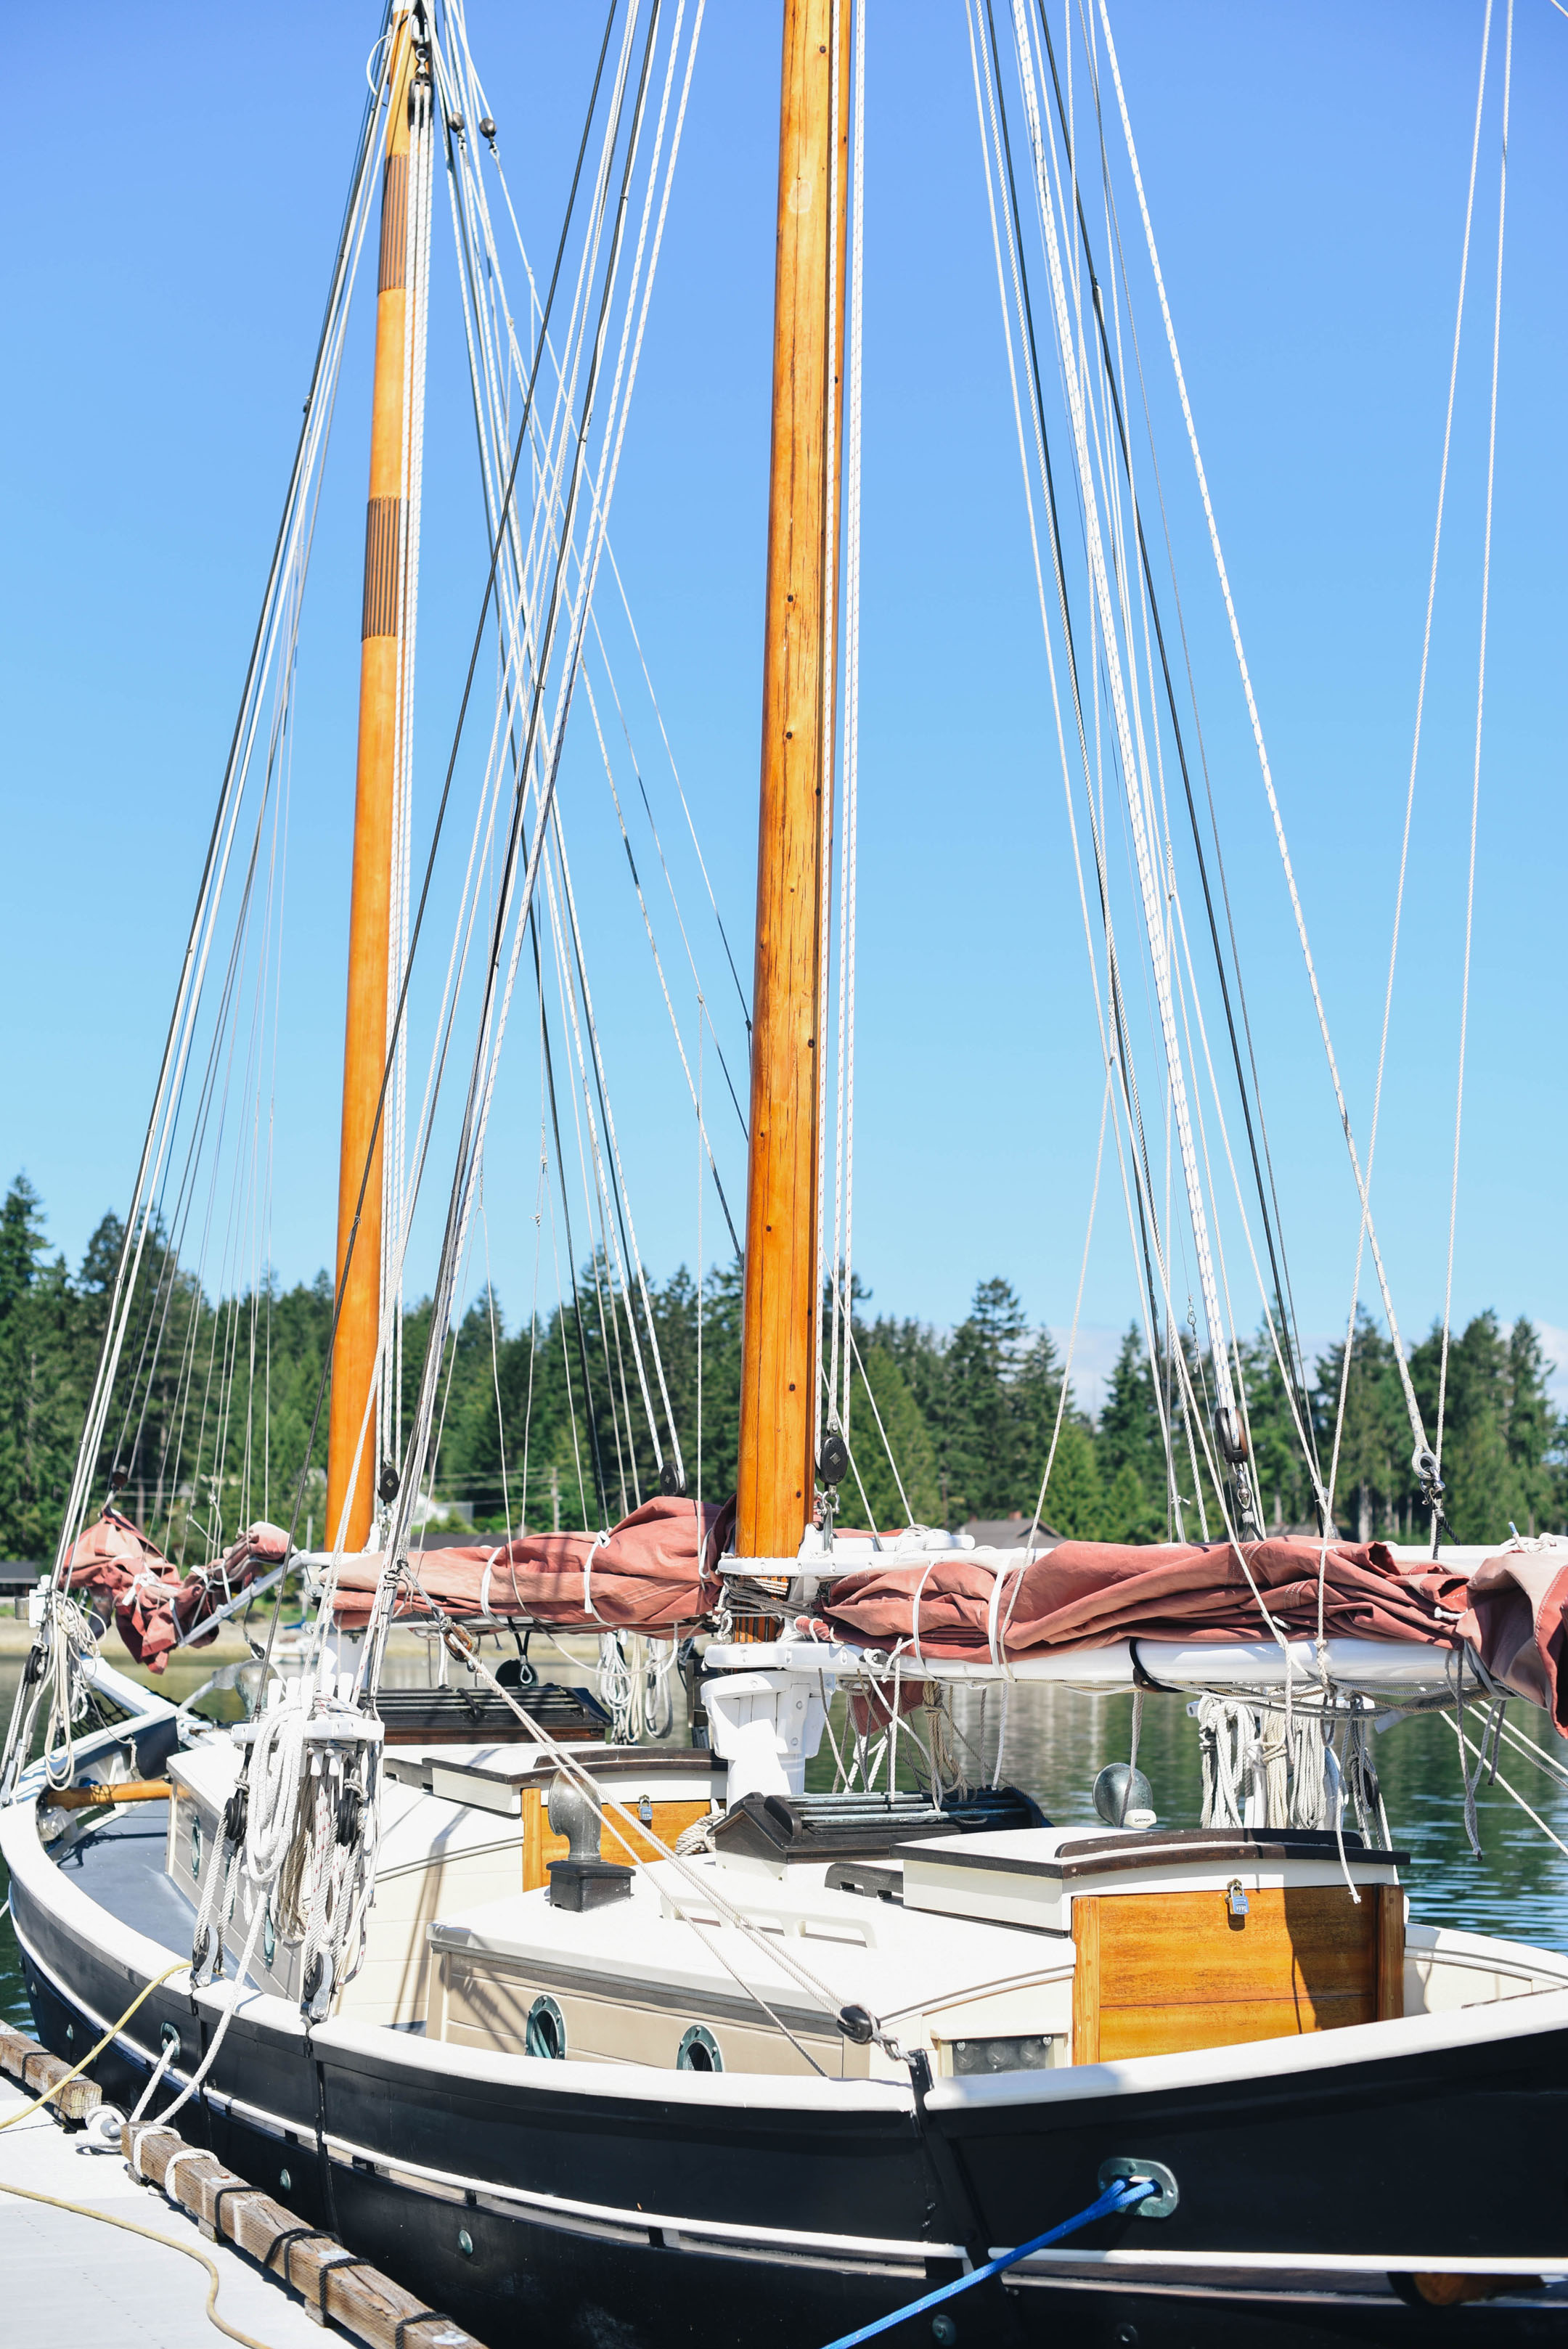 boats at alderbrook resort